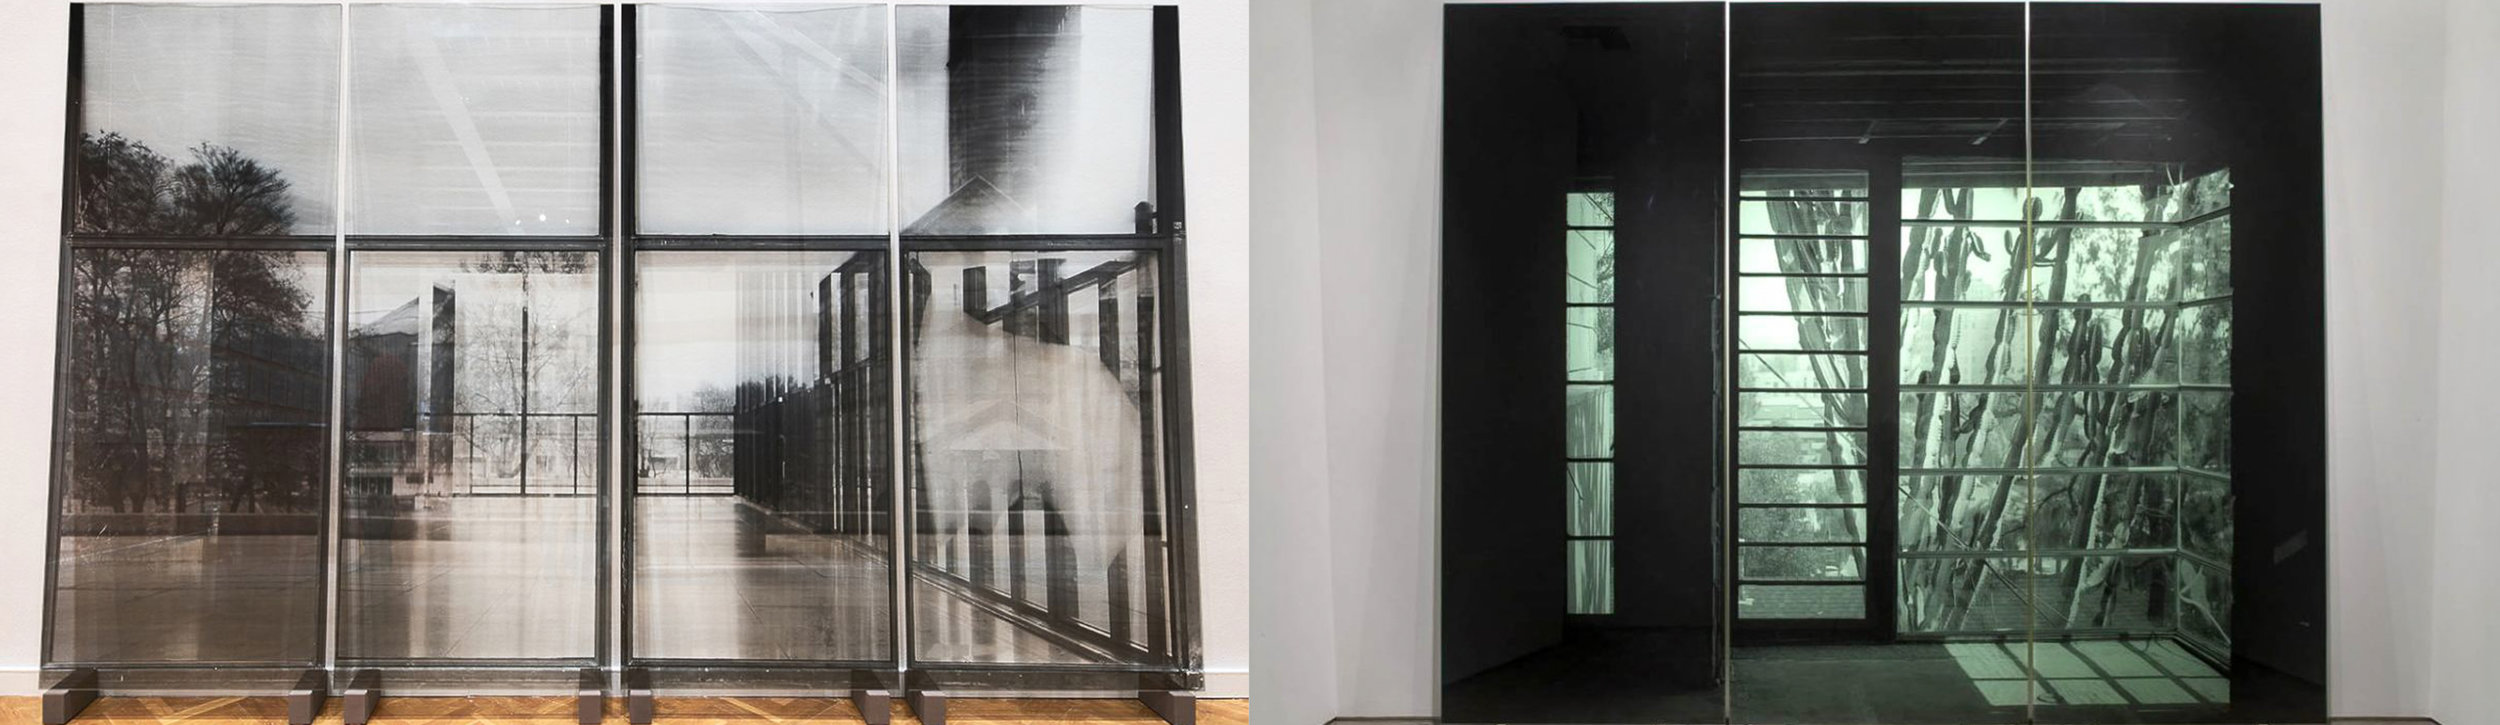 National Gallery, Shortly Before Renovation, 2017, 230 x 380 cm overall (4-panels), transparent silkscreen print on glass, edition of 3 (left), Succulent Screen, 2007 288 x 351.5 cm (overall, 3-panels), silk-screen print on glass, edition of 3 (right)